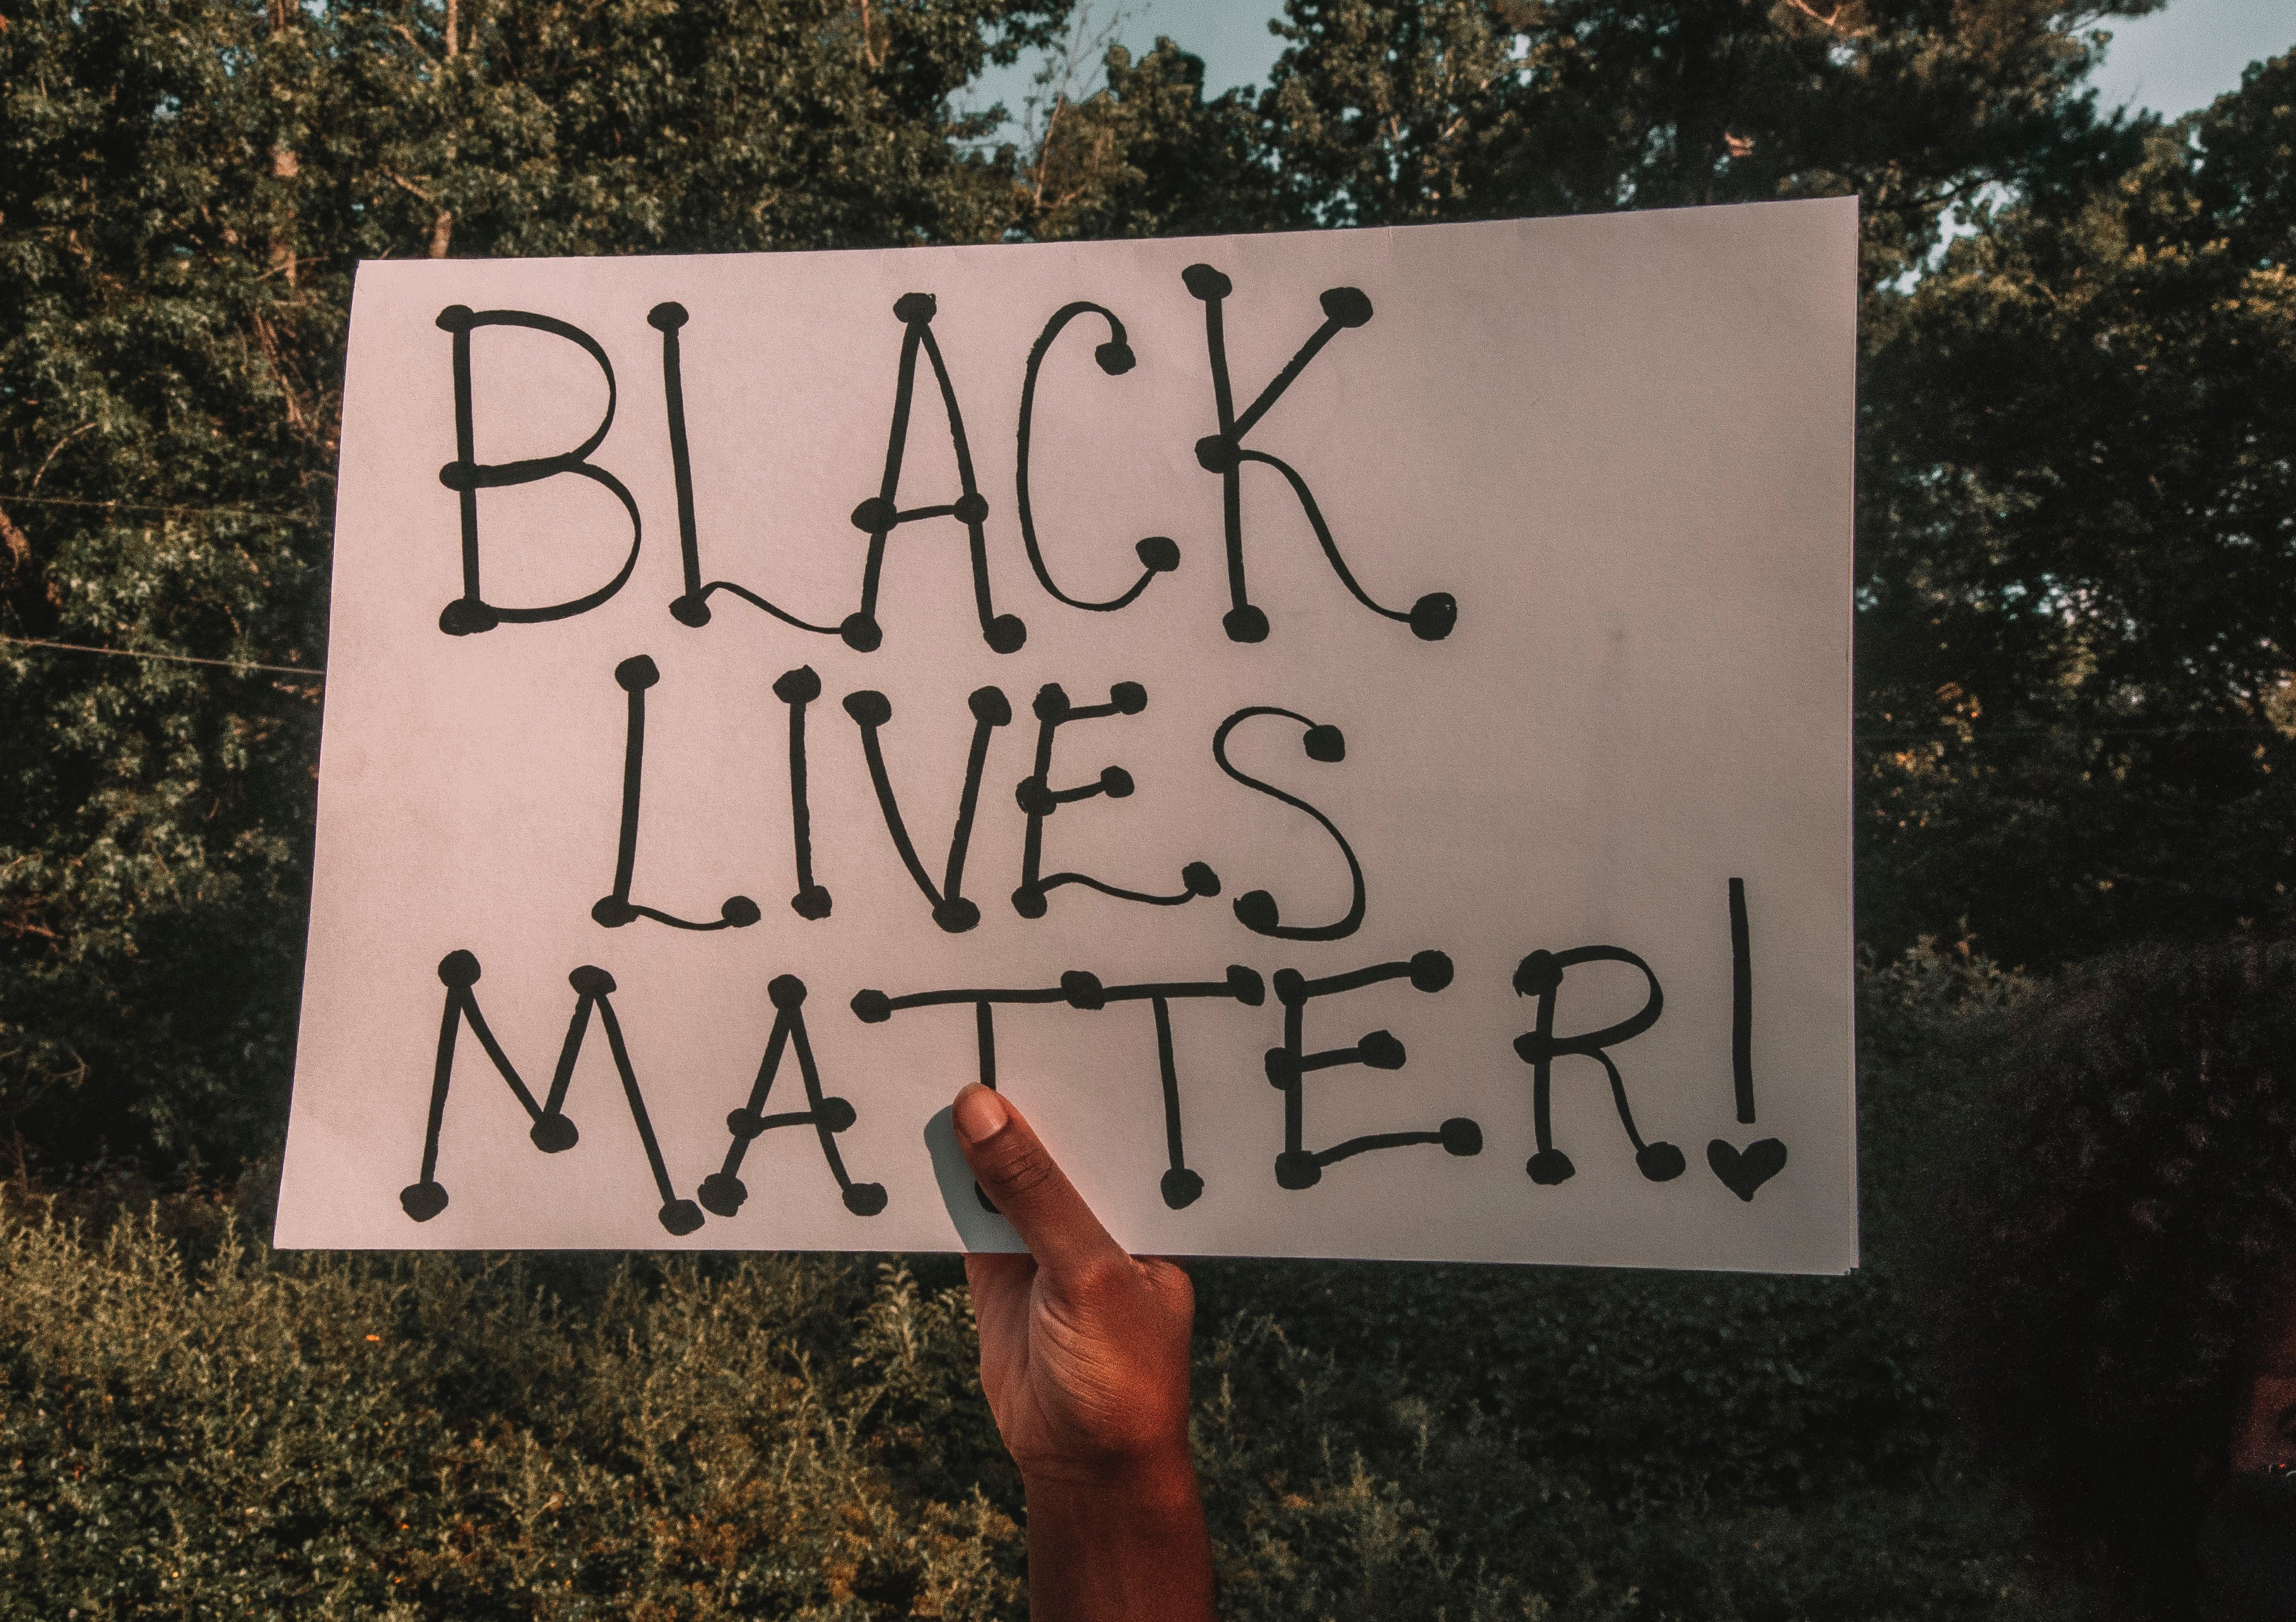 """A black hand holds up a sign that reads """"Black Lives Matter!"""""""